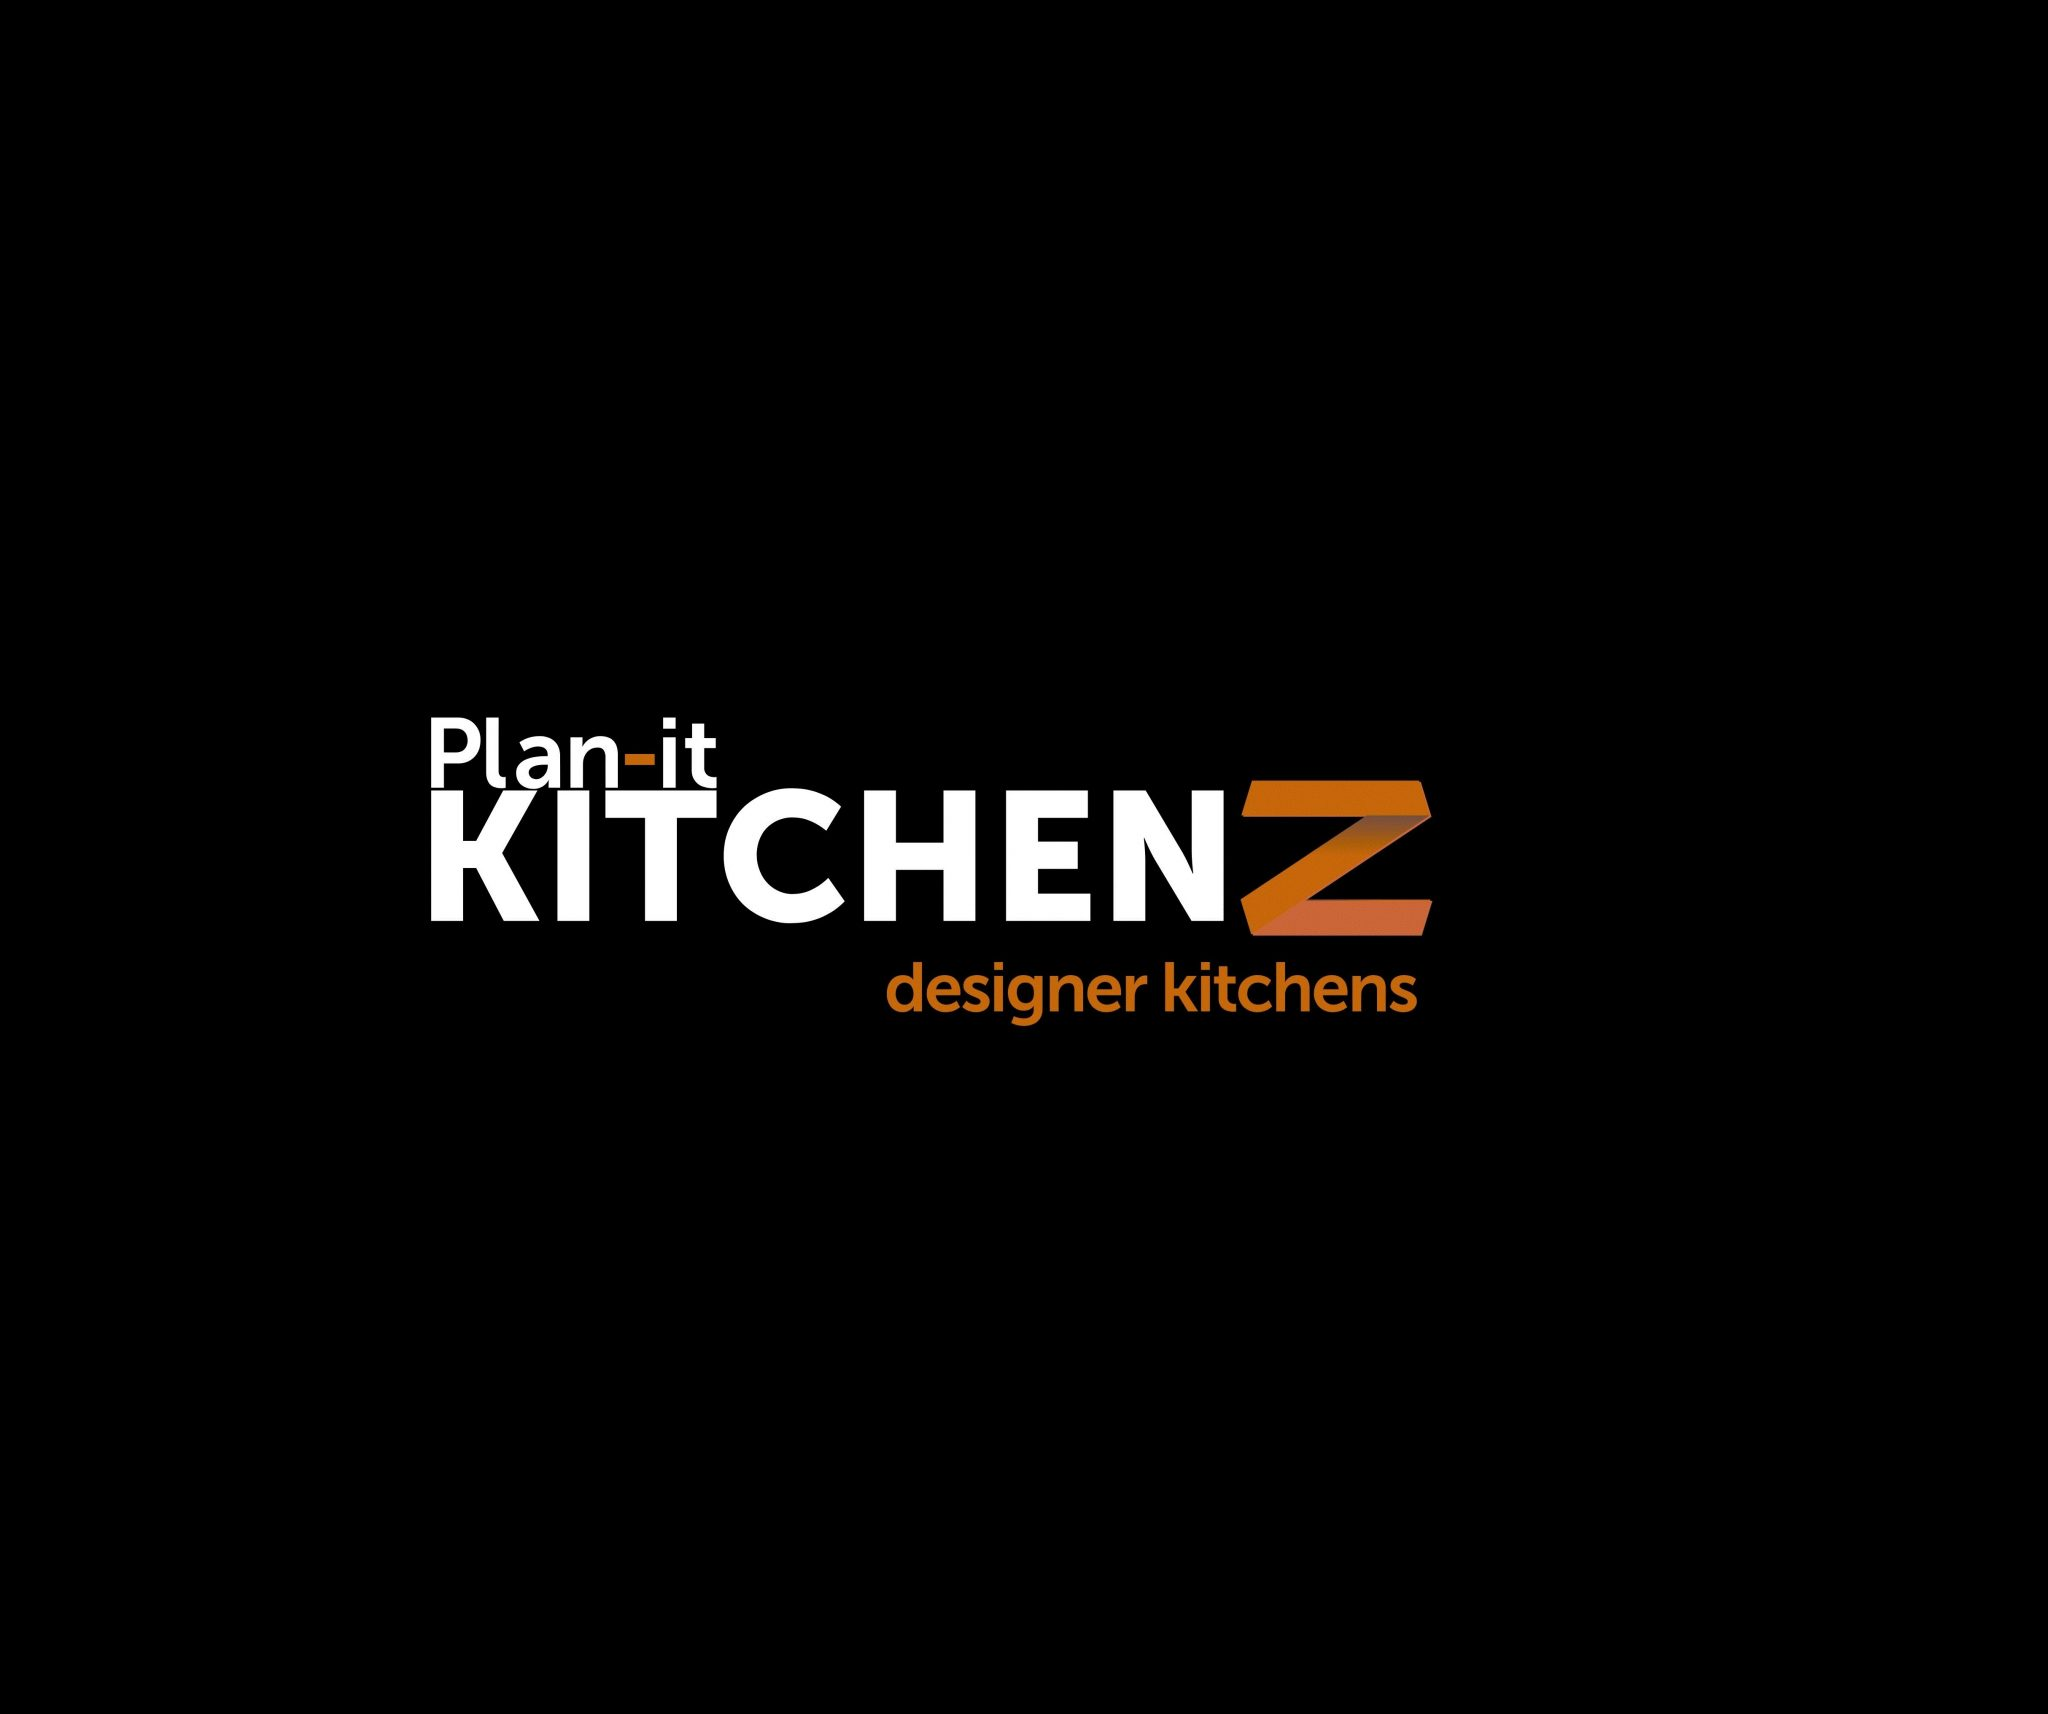 Plan-It Kitchenz